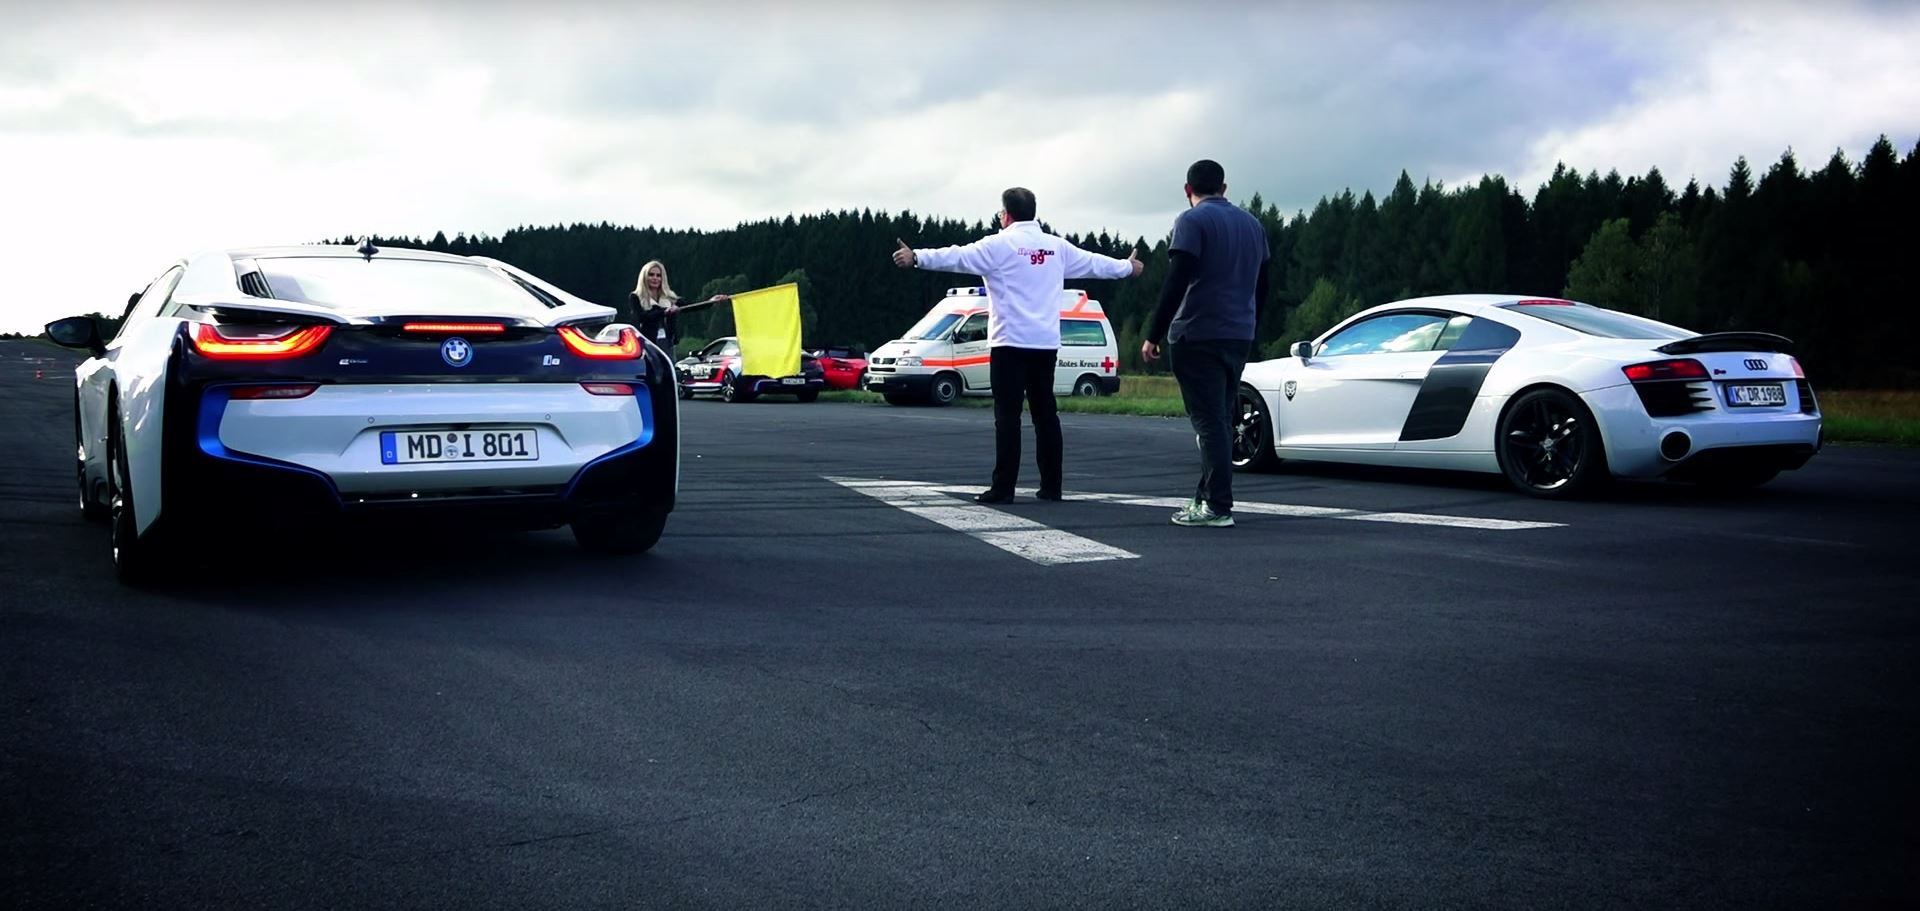 Bmw I8 Drag Races Audi R8 And It Does Not End Well For The Supercar